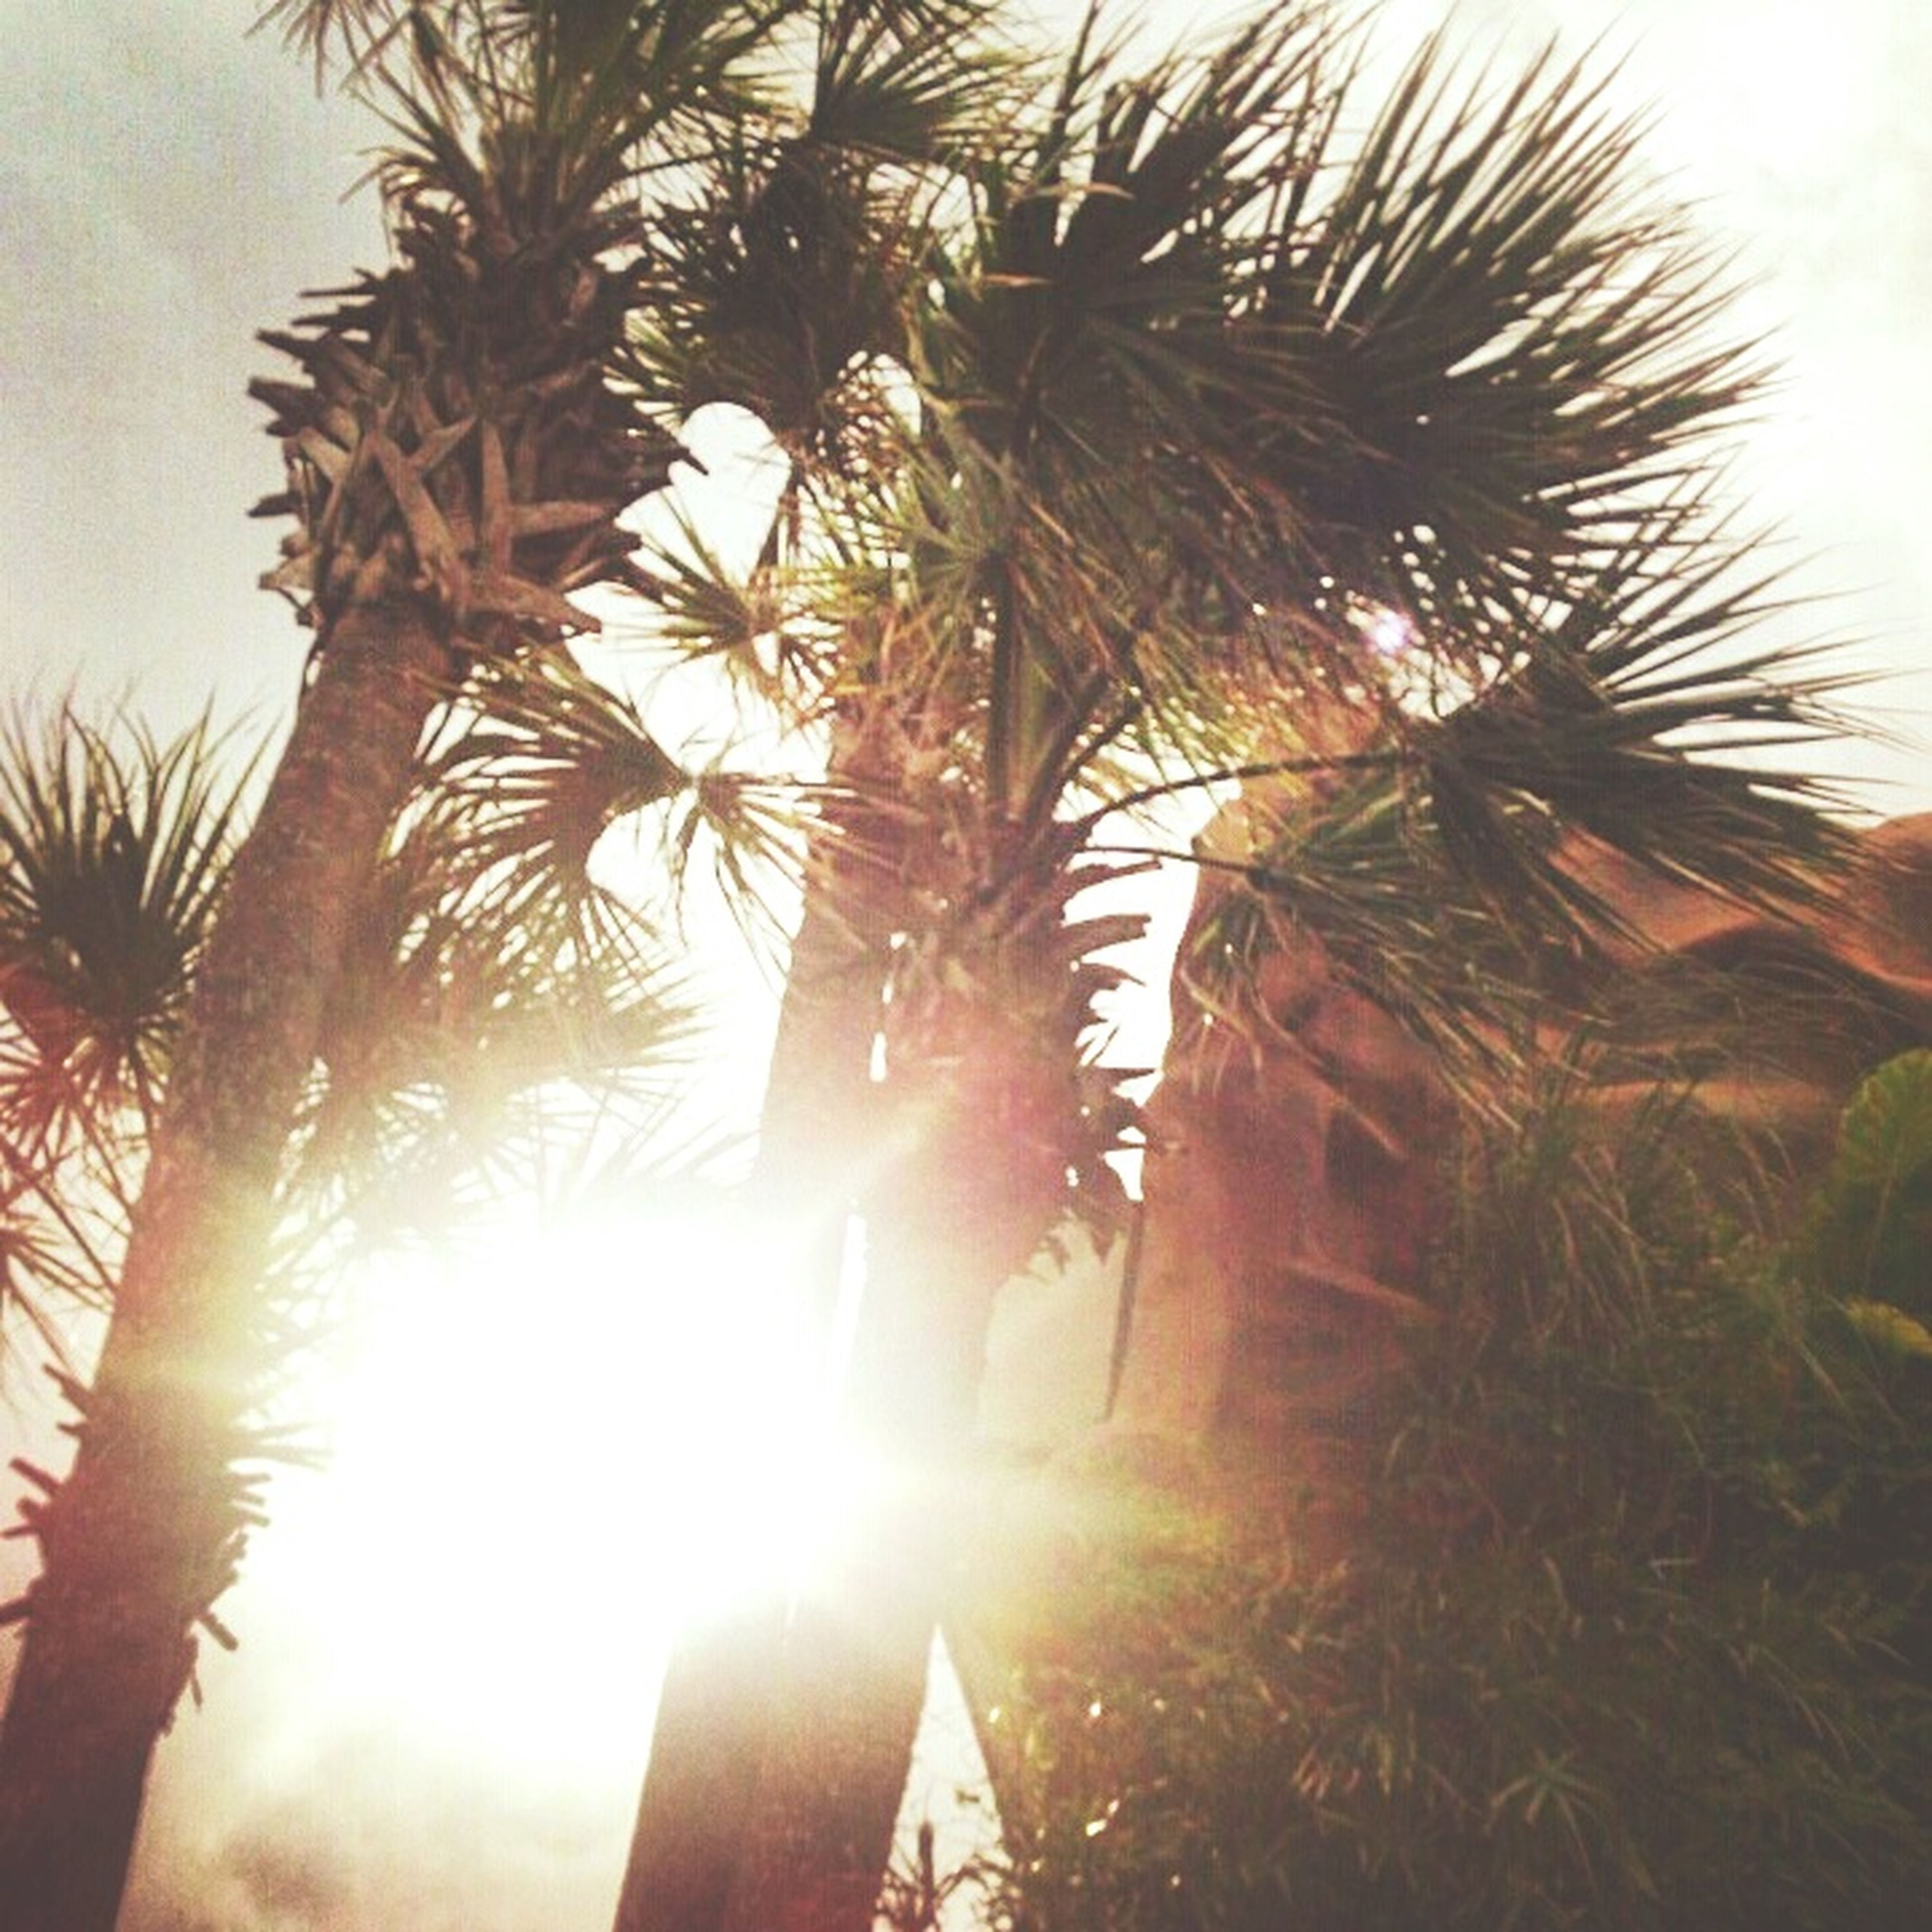 sun, palm tree, sunbeam, sunlight, tree, lens flare, sunset, growth, nature, tranquility, sky, low angle view, sunny, beauty in nature, bright, tranquil scene, back lit, clear sky, silhouette, outdoors